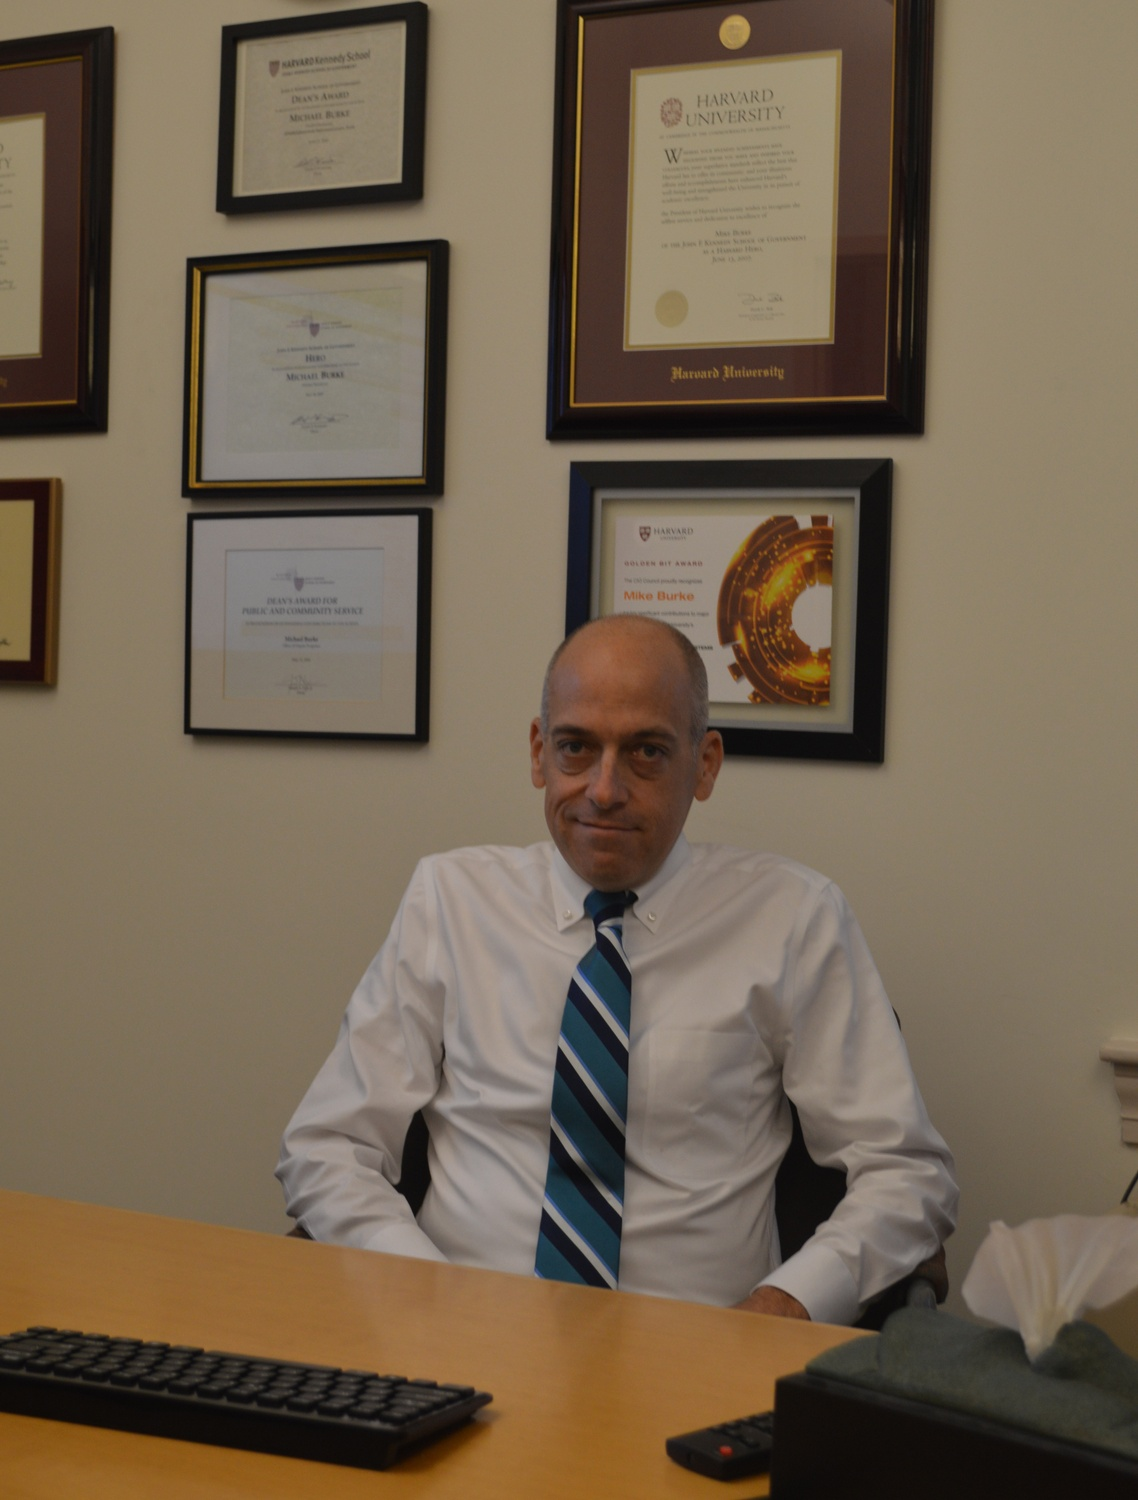 Michael P. Burke is the Registrar: he manages everything from enrollment issues to the course catalog.